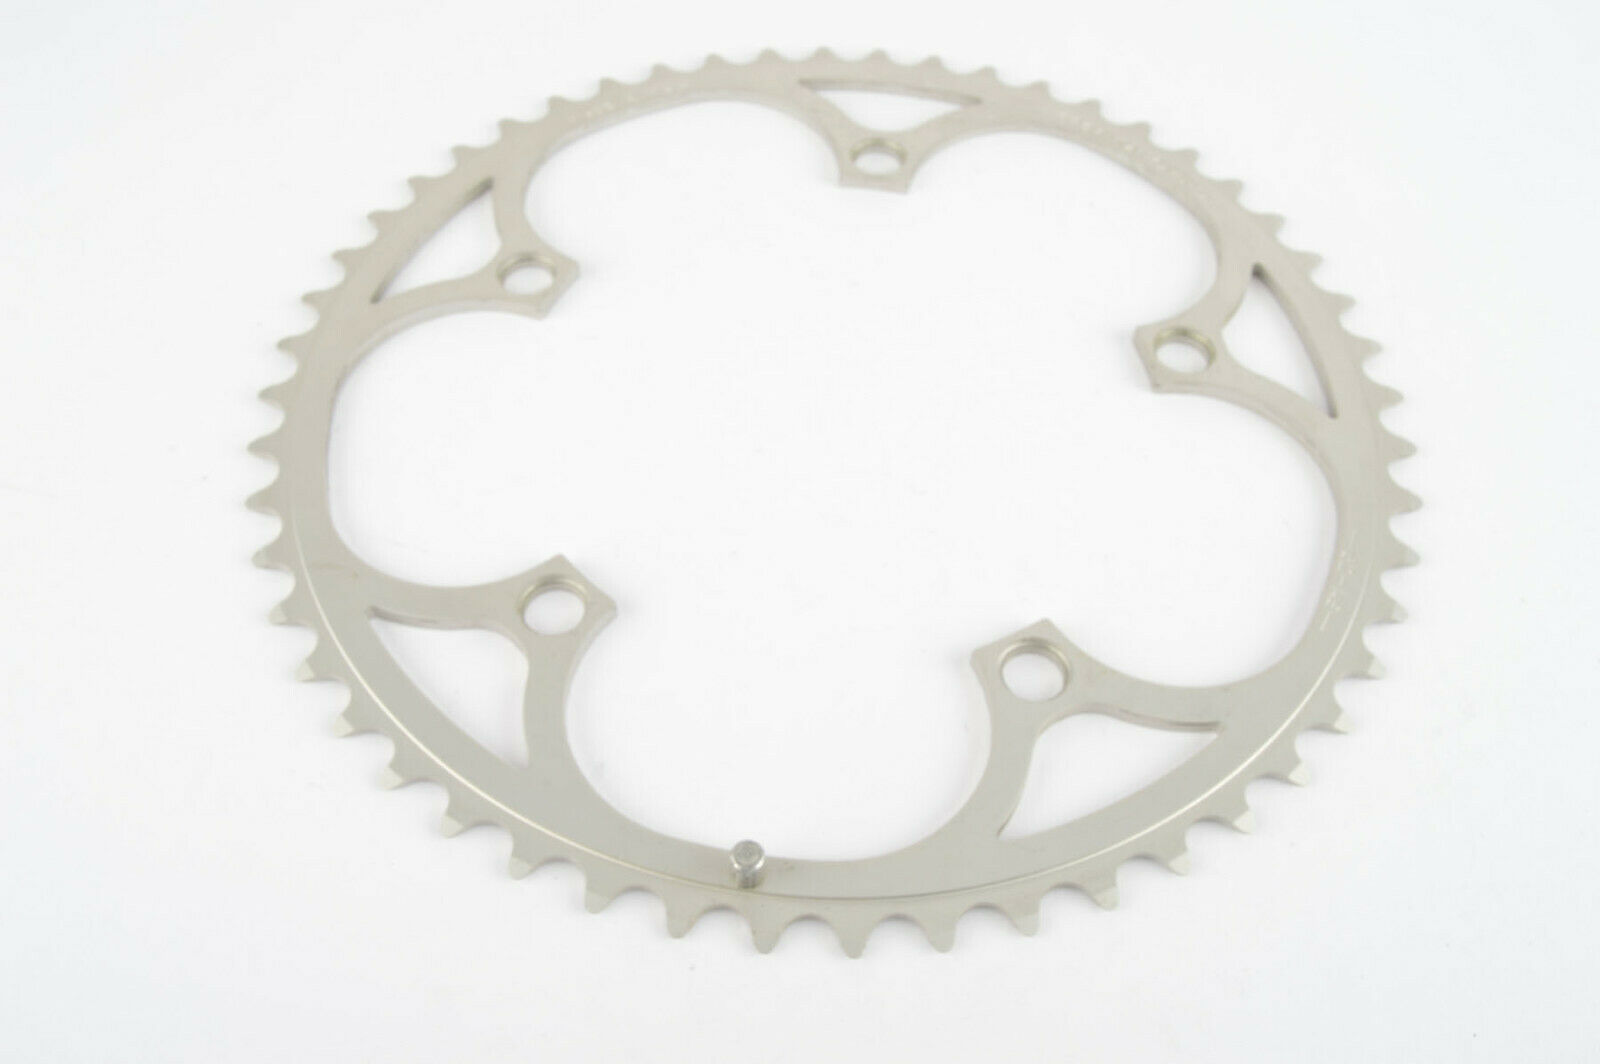 NOS Campagnolo Chorus Chainring in 52 teeth and 135 BCD